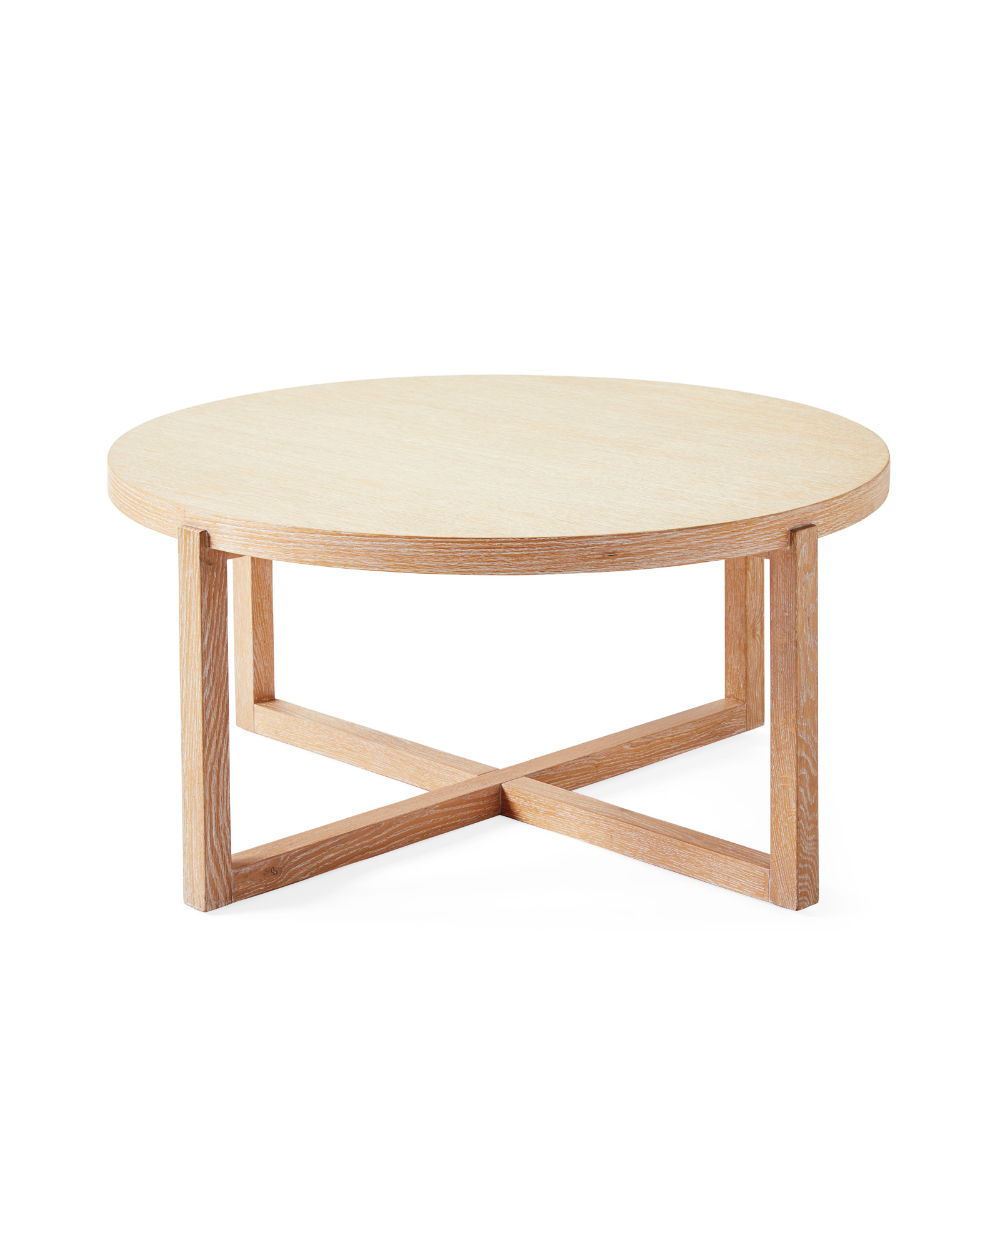 Clifton Coffee Table In 2021 Coffee Table Unique Coffee Table Table [ 1250 x 1000 Pixel ]